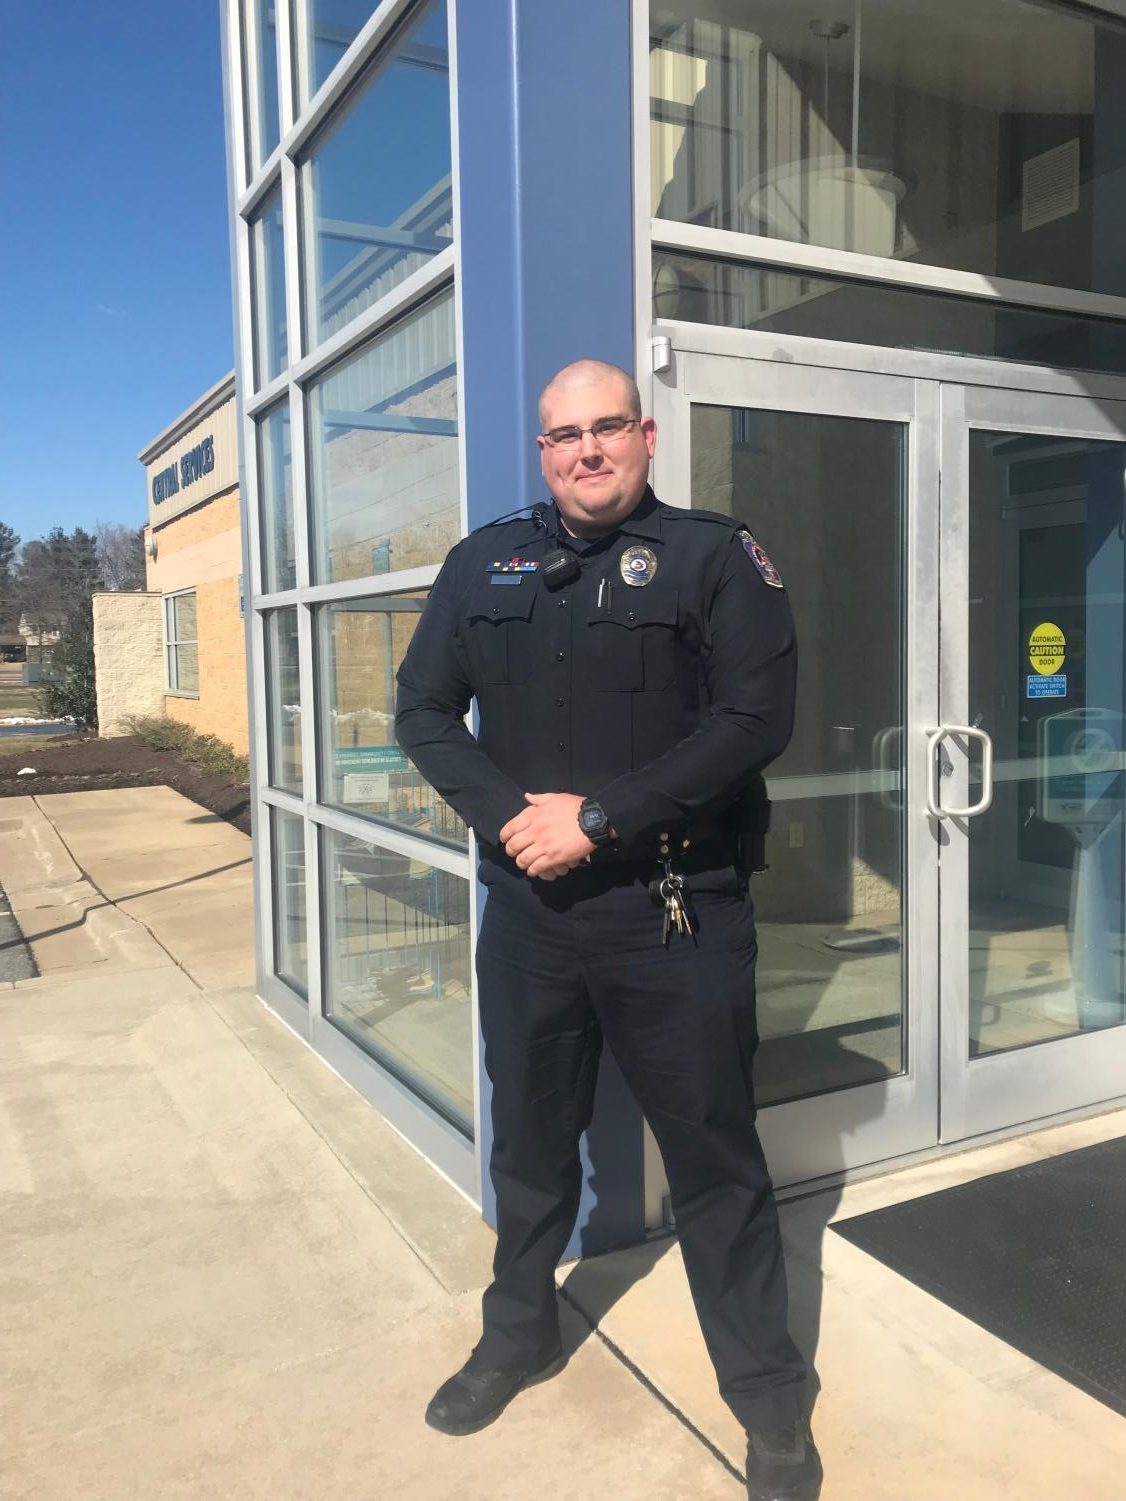 Students say they don't worry about their safety on campus because of constant police patrols. Shown, Officer Duane Gottschalk.